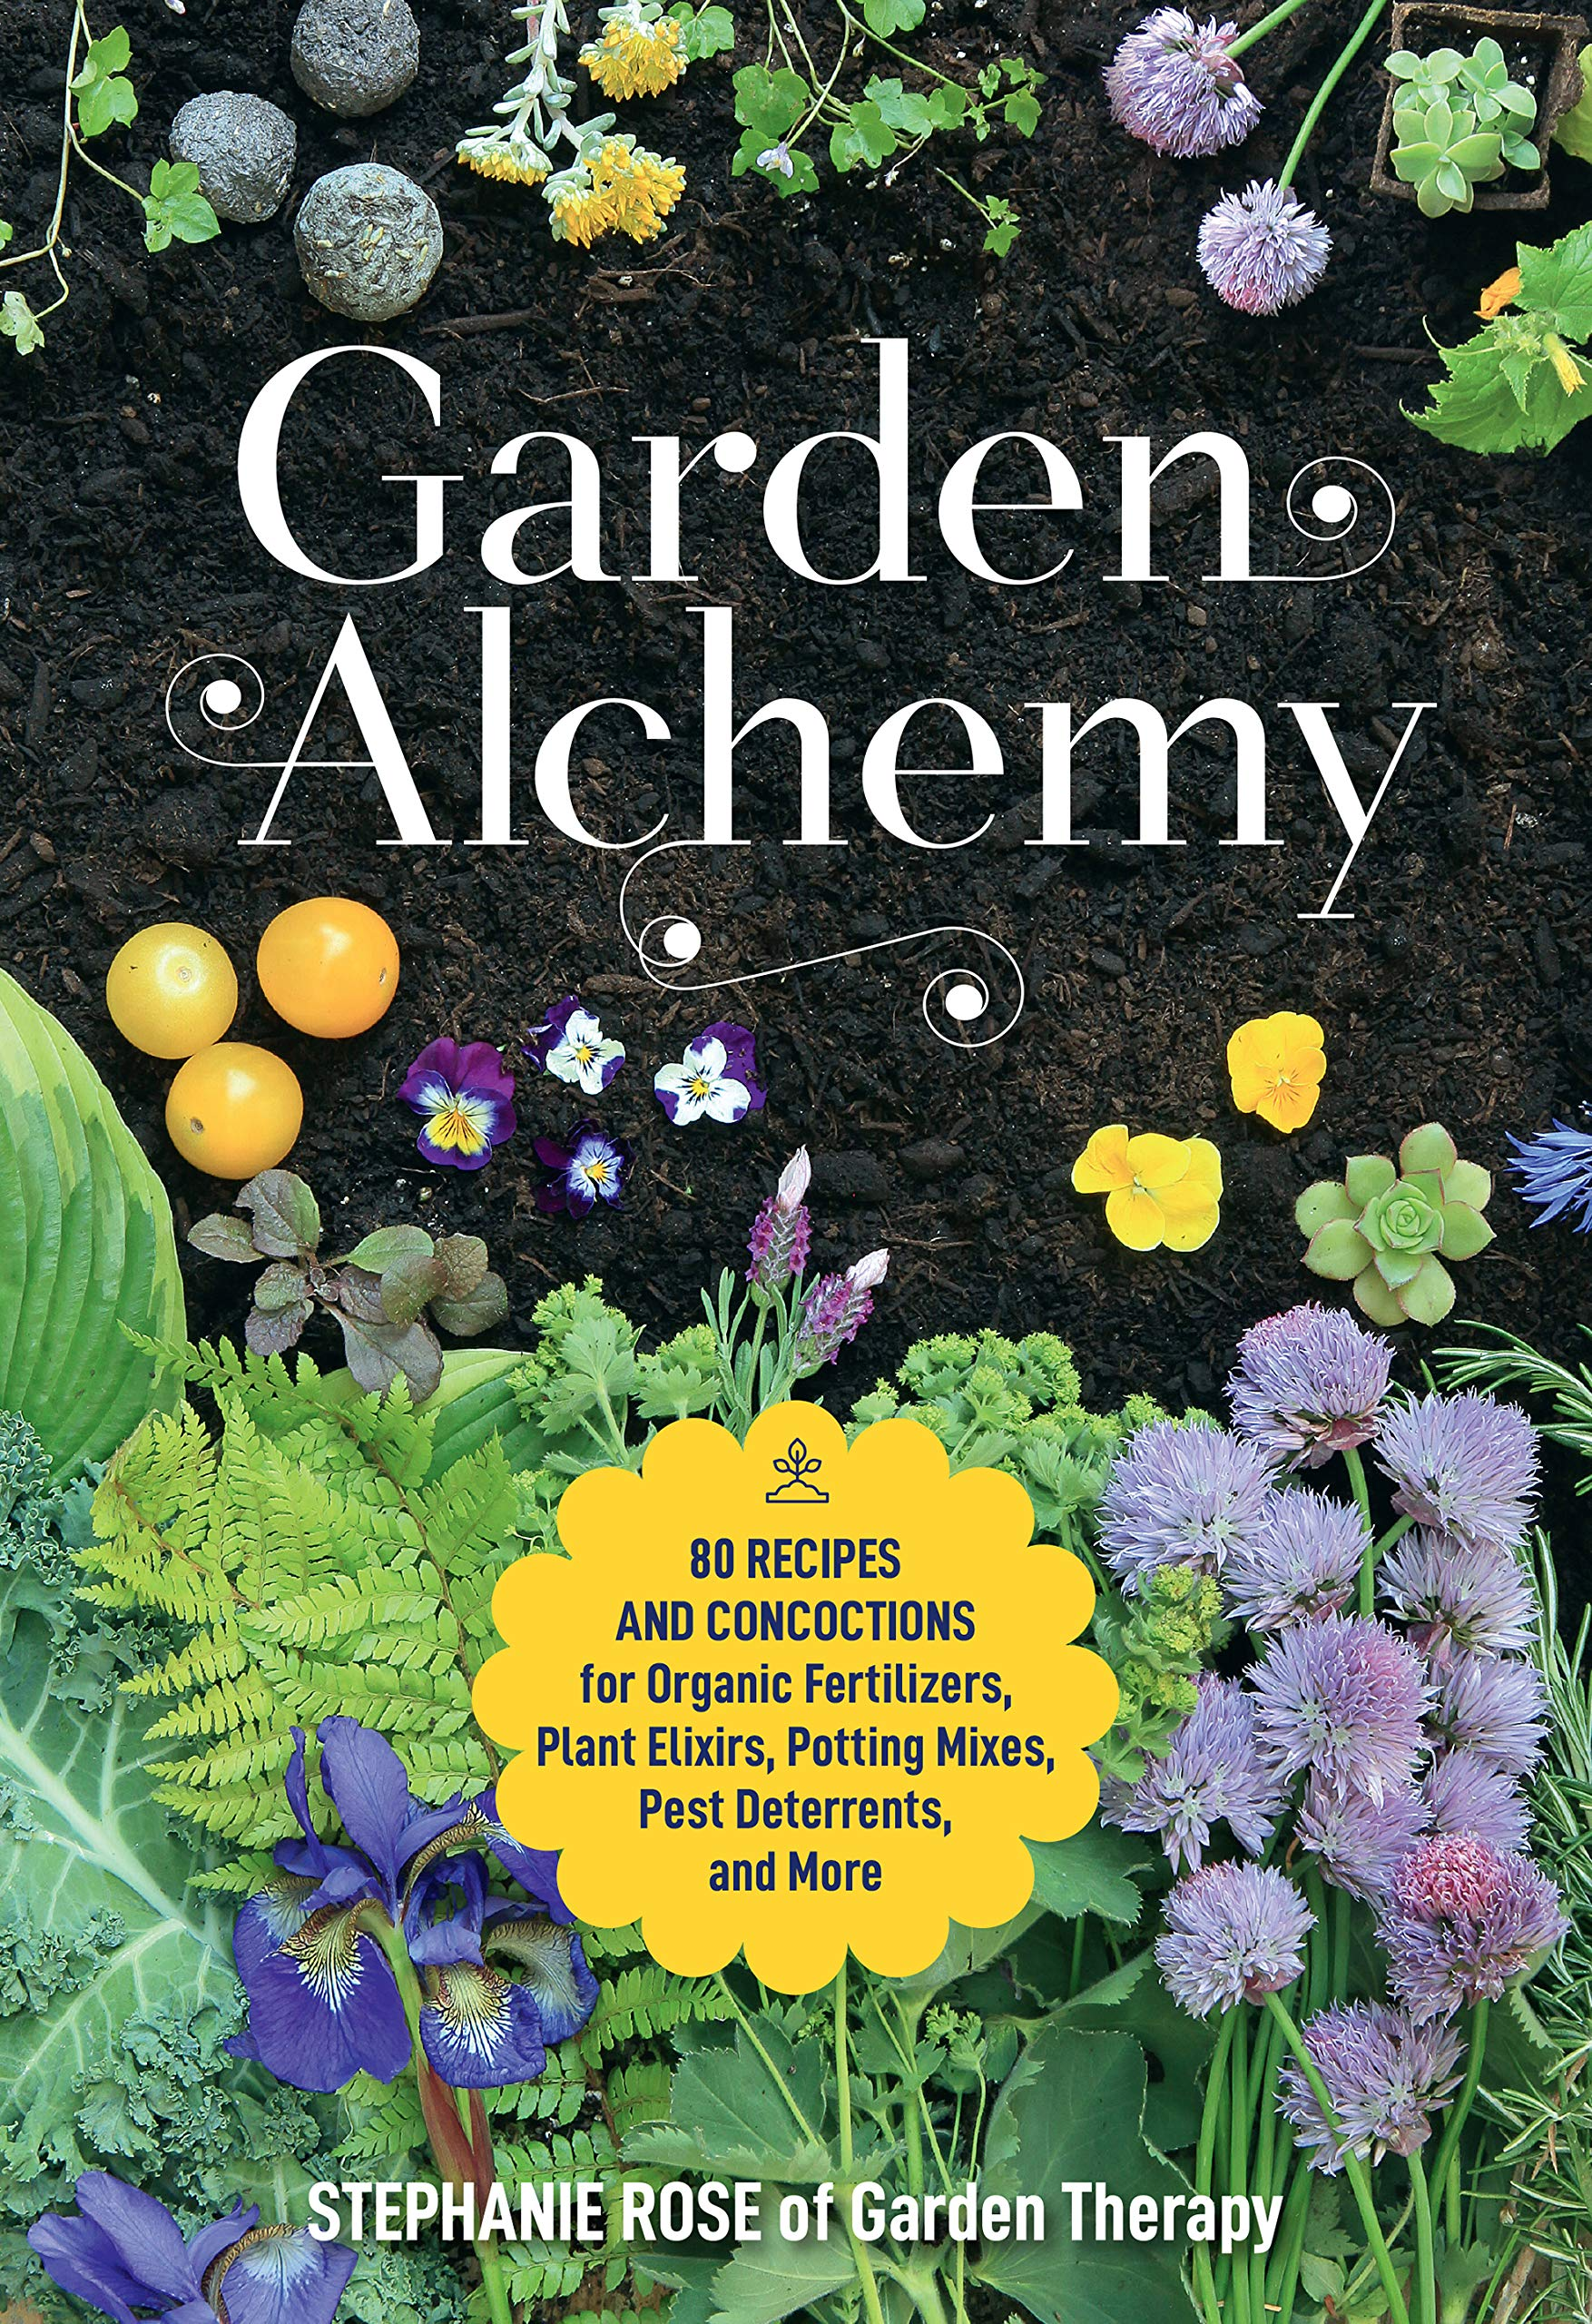 Garden Alchemy:80 Recipes and Concoctions for Organic Fertilizers, Plant Elixirs, Potting Mixes, Pest Deterrents, and More